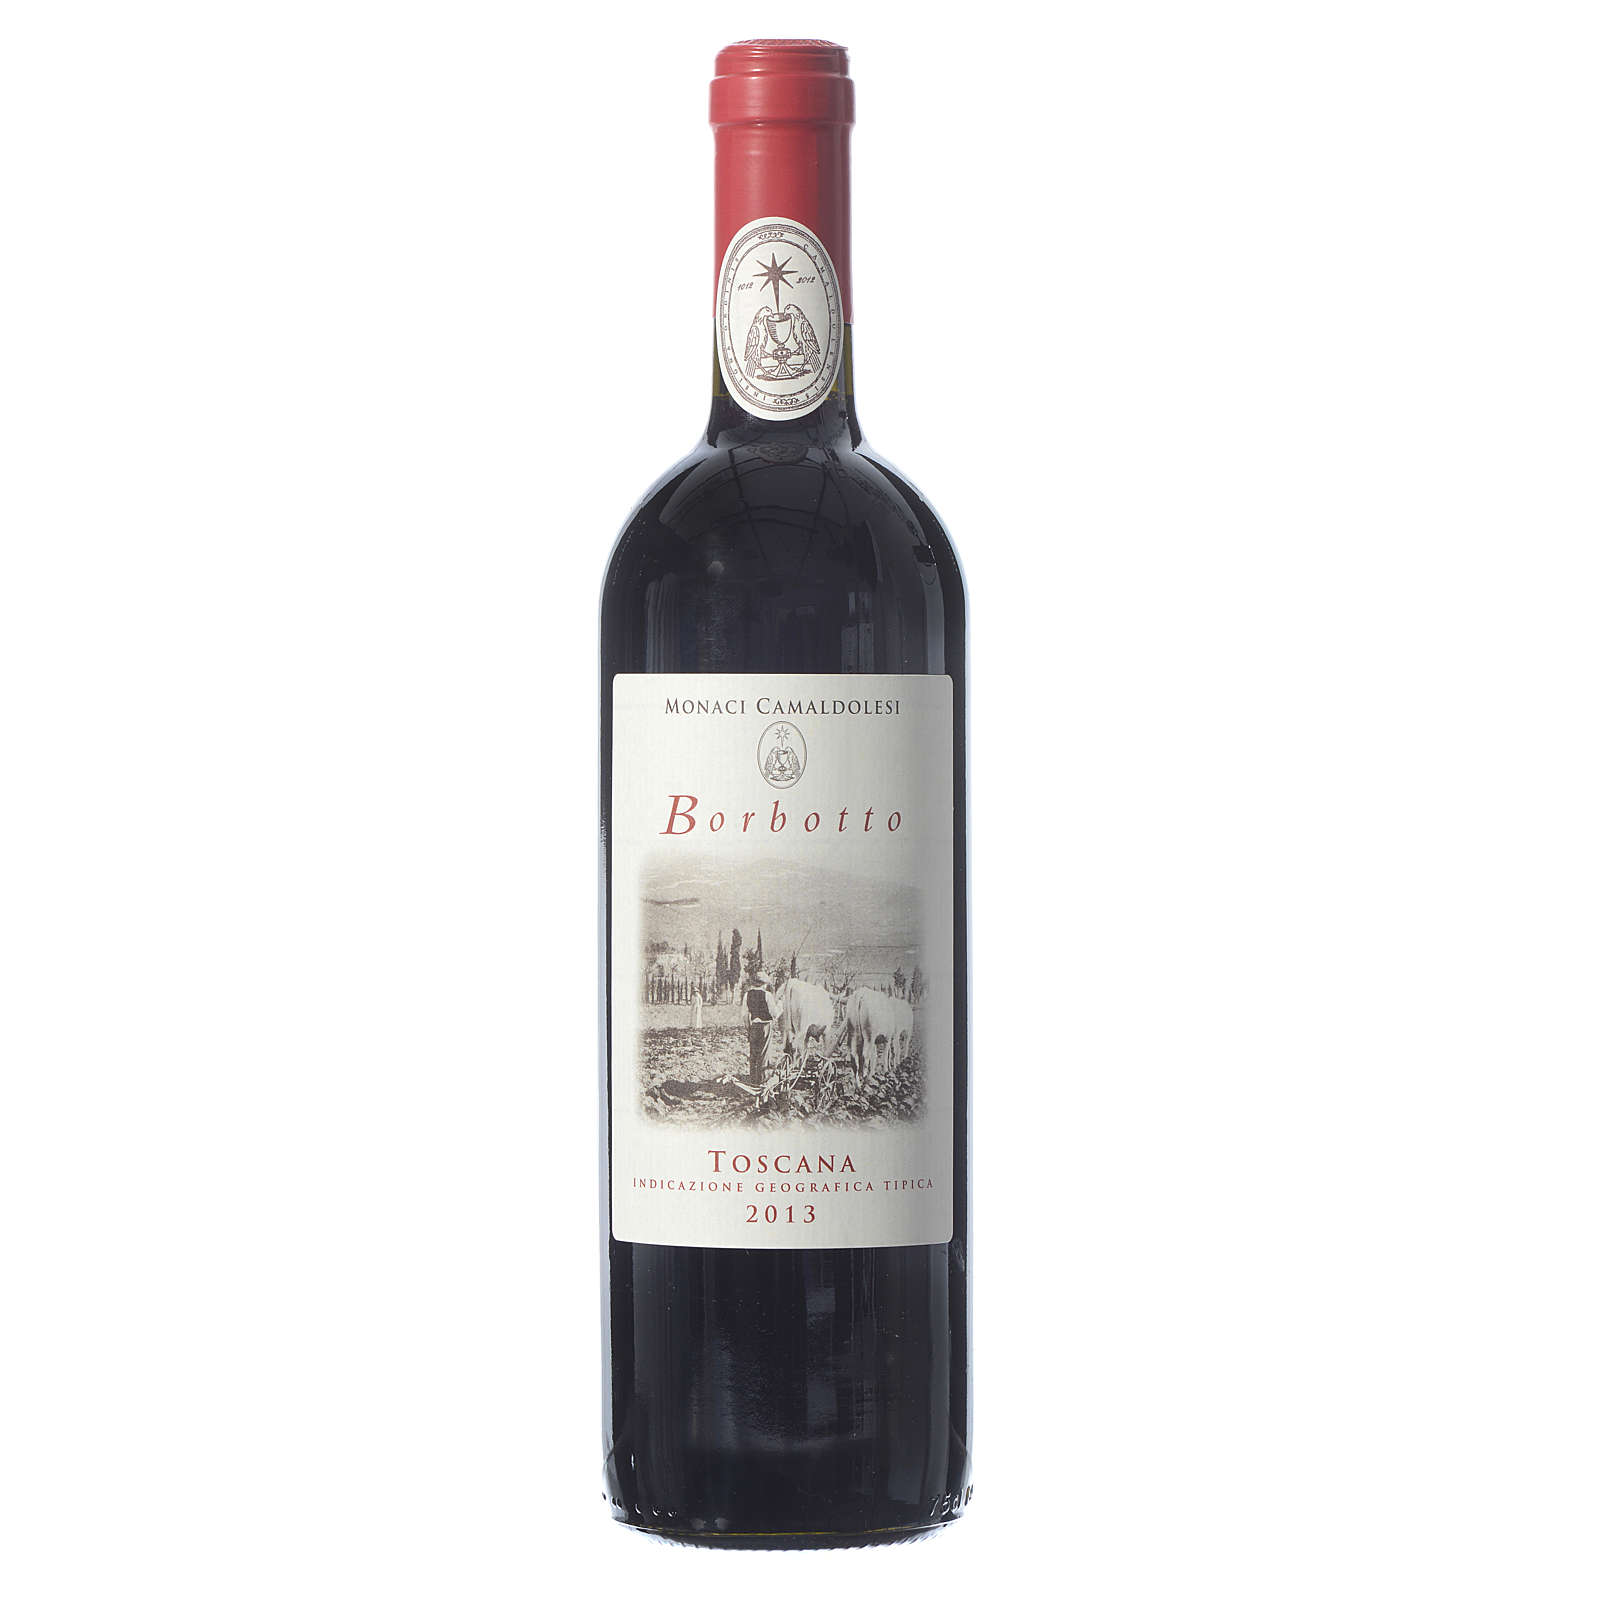 Red Tuscan wine Borbotto, 750 ml, 2013 harvest 3